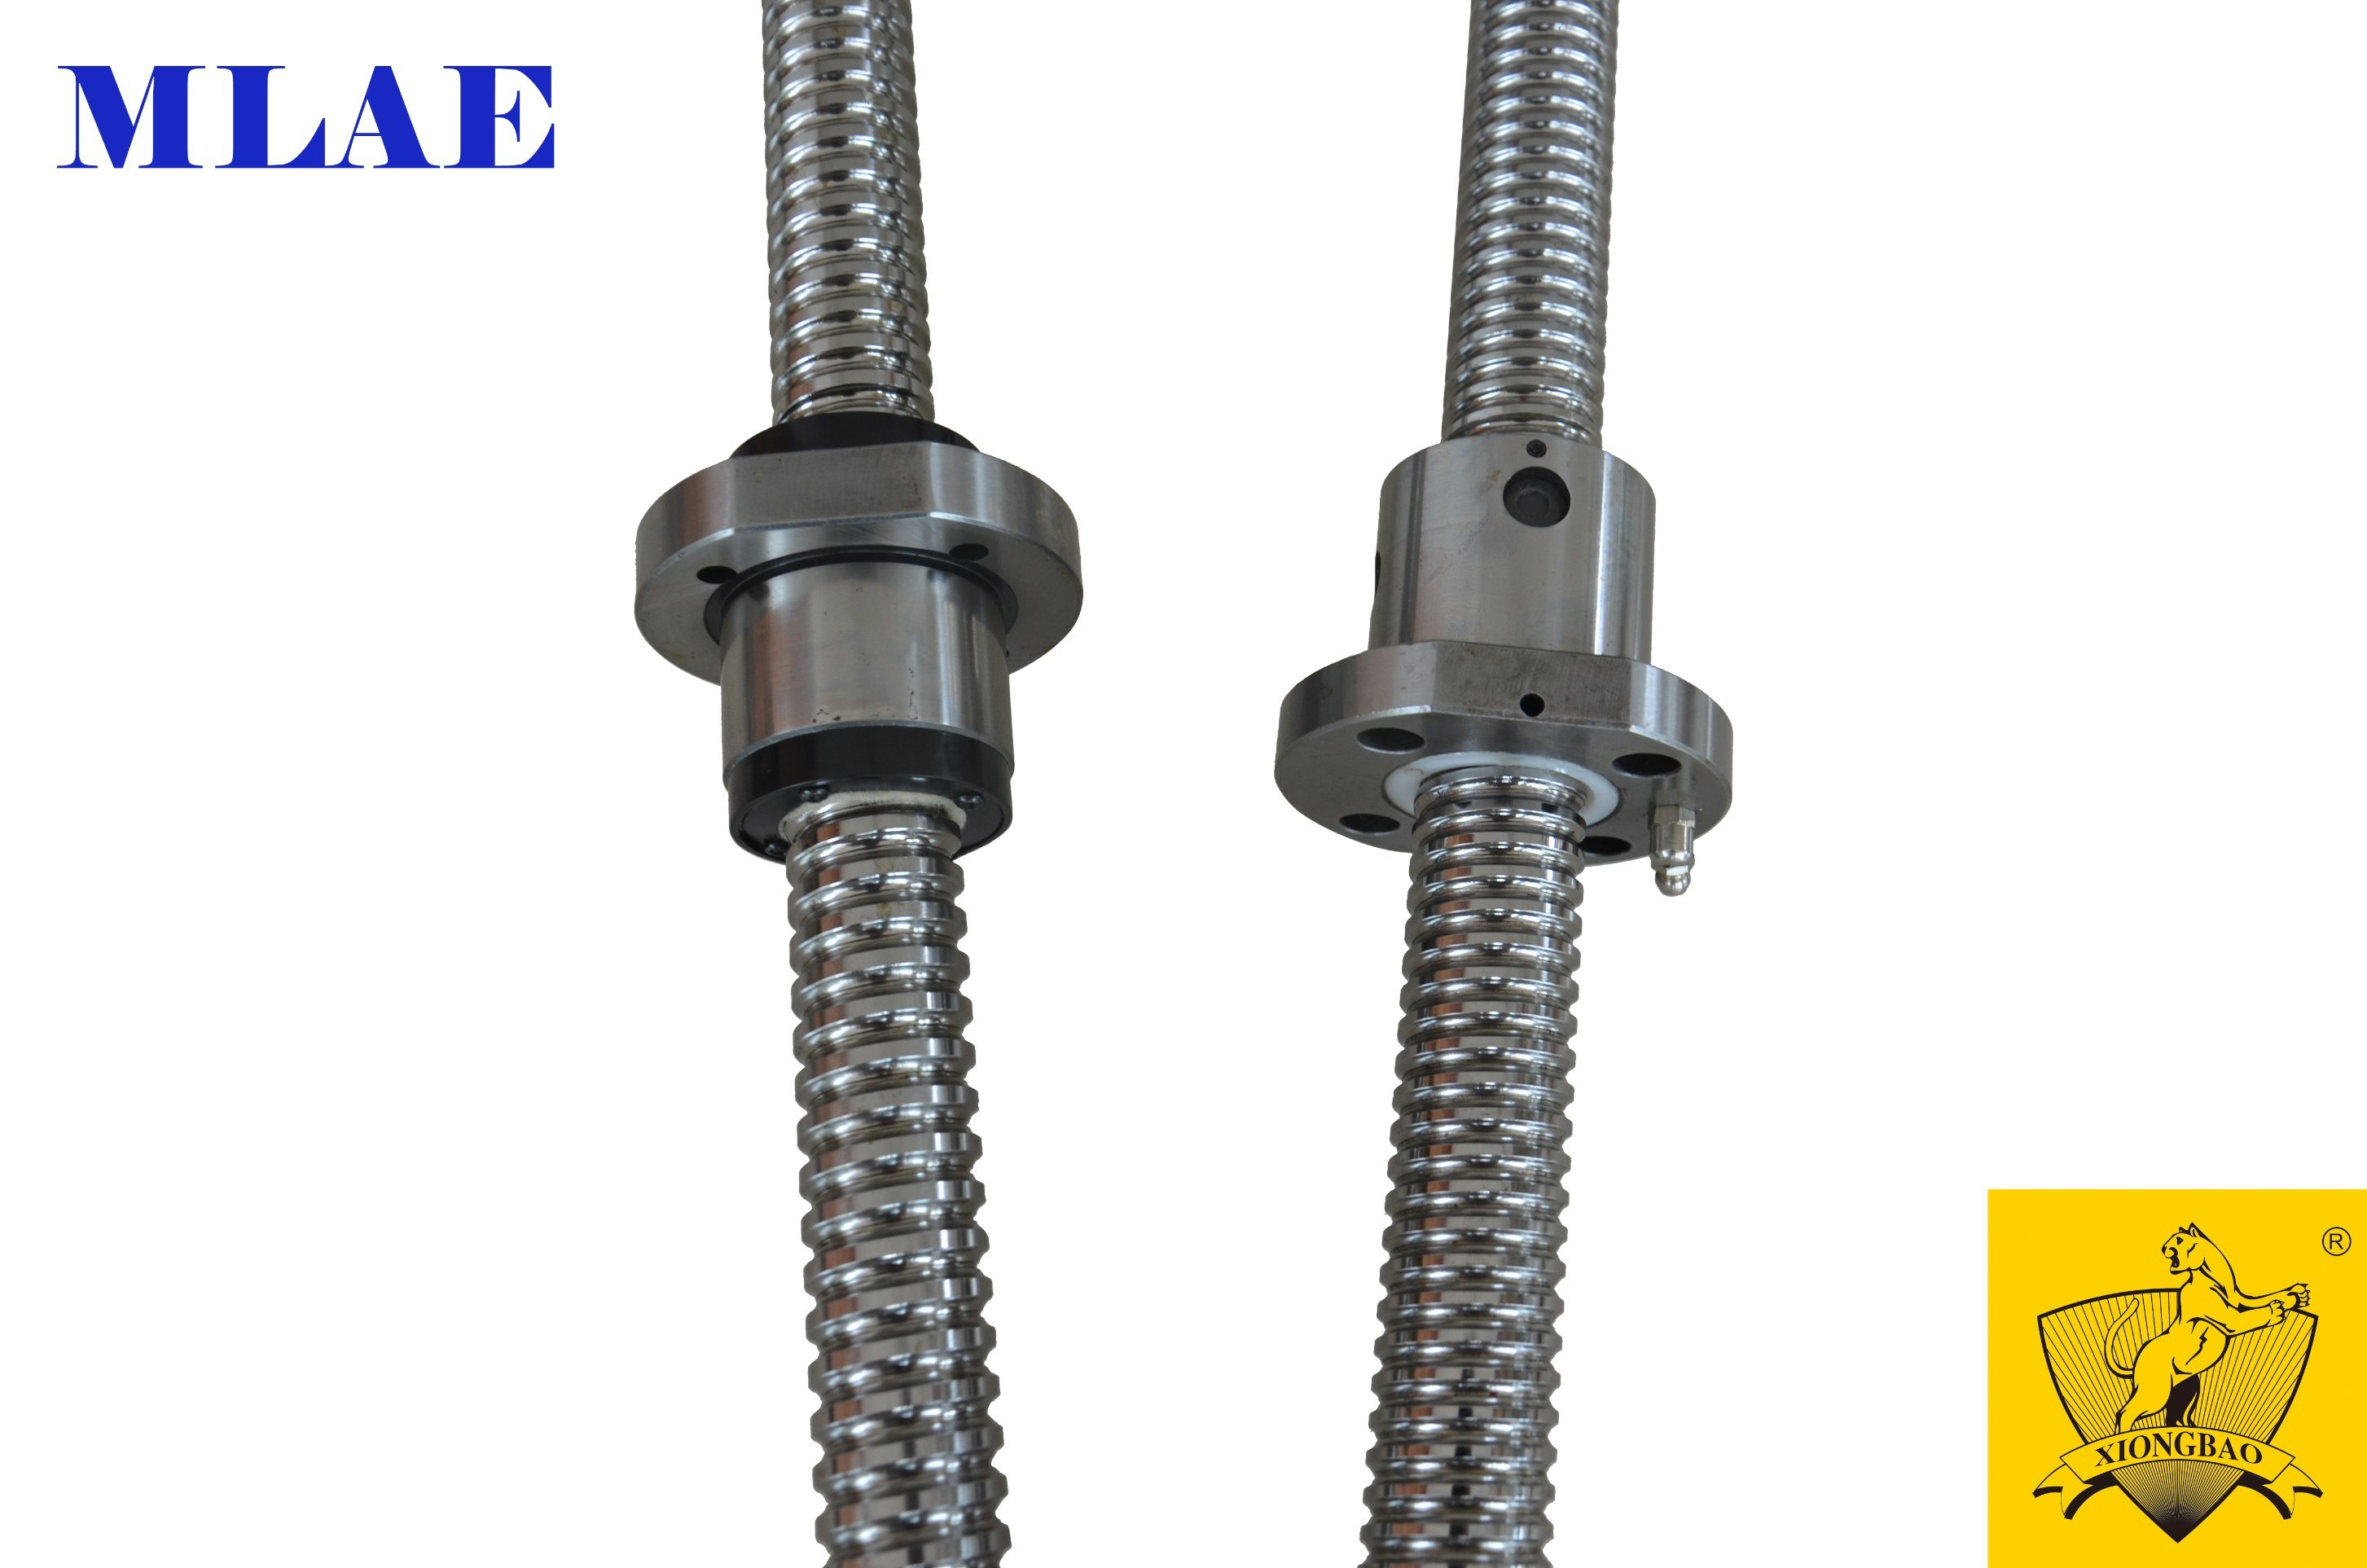 CNC Router Machine Ball Screw Nuts Housing Lead Screw